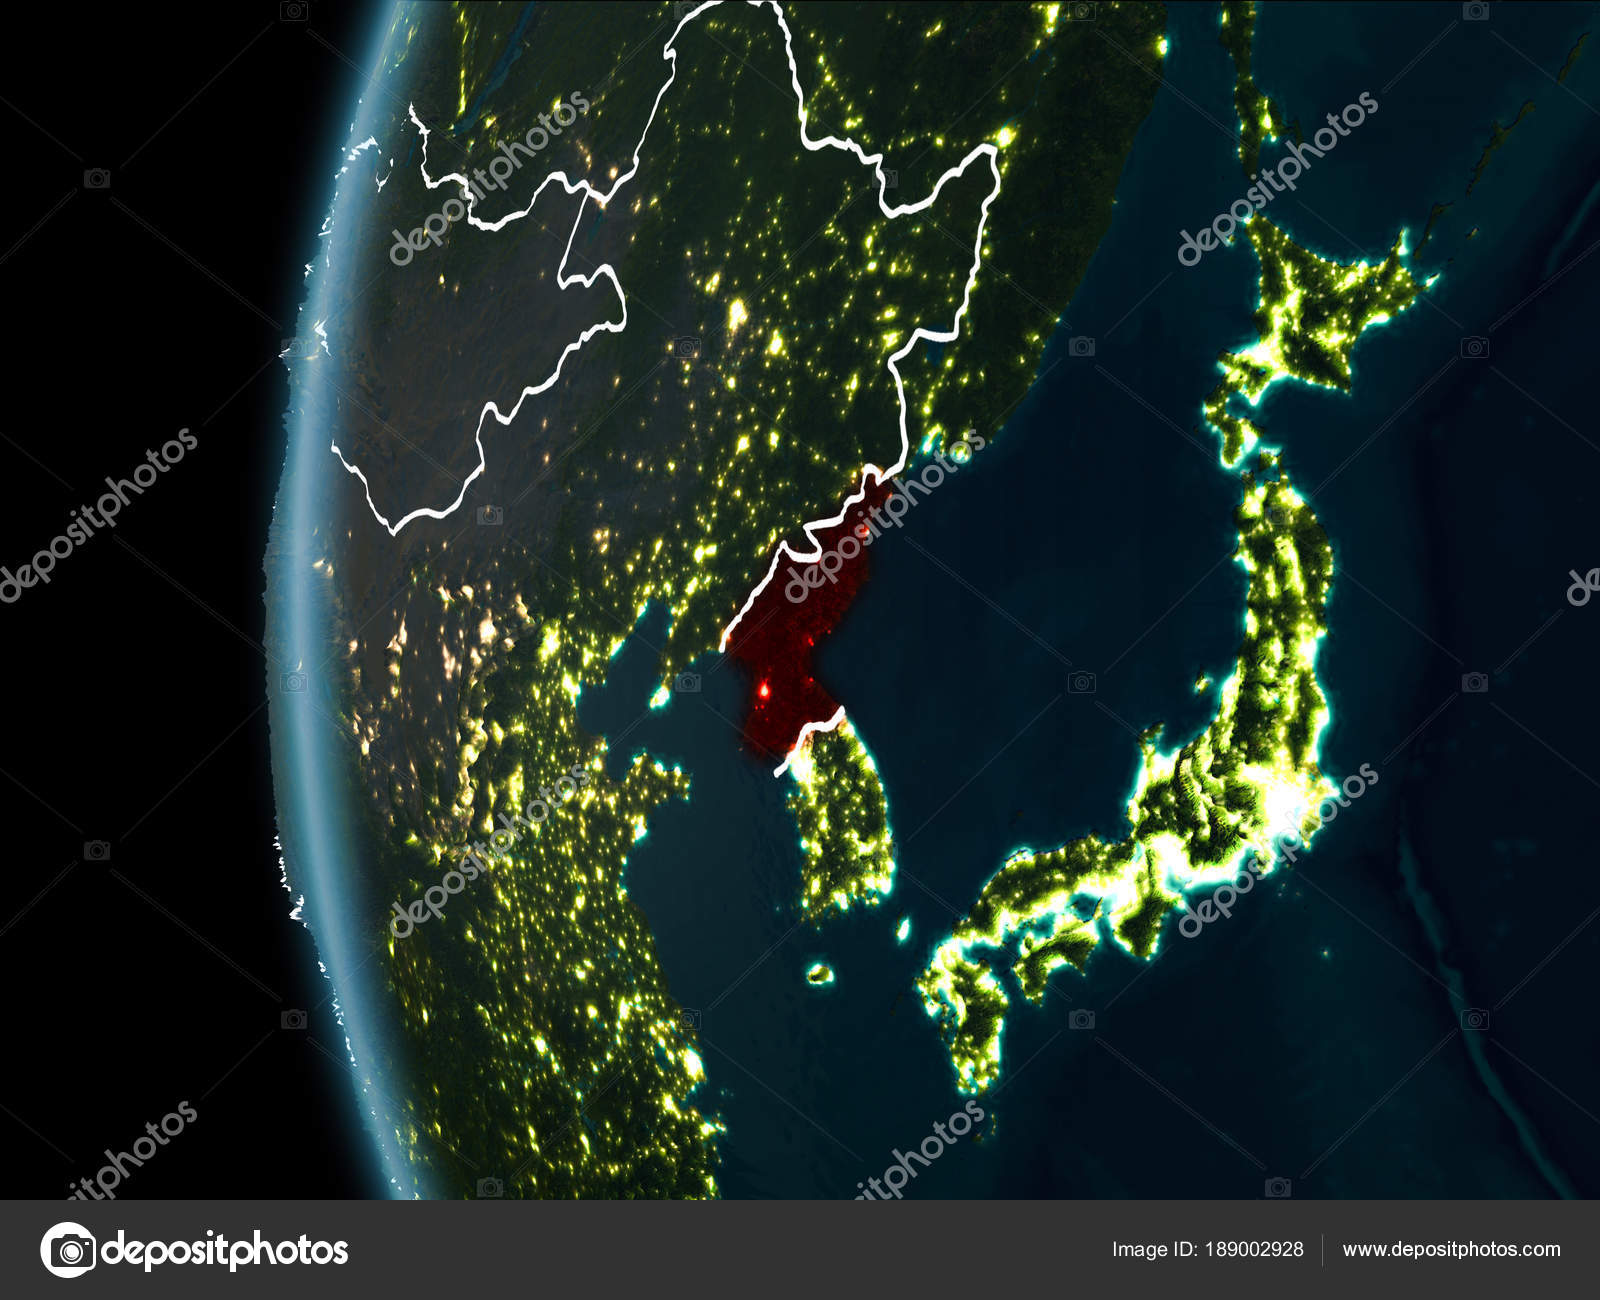 North korea from space at night stock photo tomiger 189002928 orbit view of north korea highlighted in red with visible borderlines and city lights on planet earth at night 3d illustration gumiabroncs Choice Image